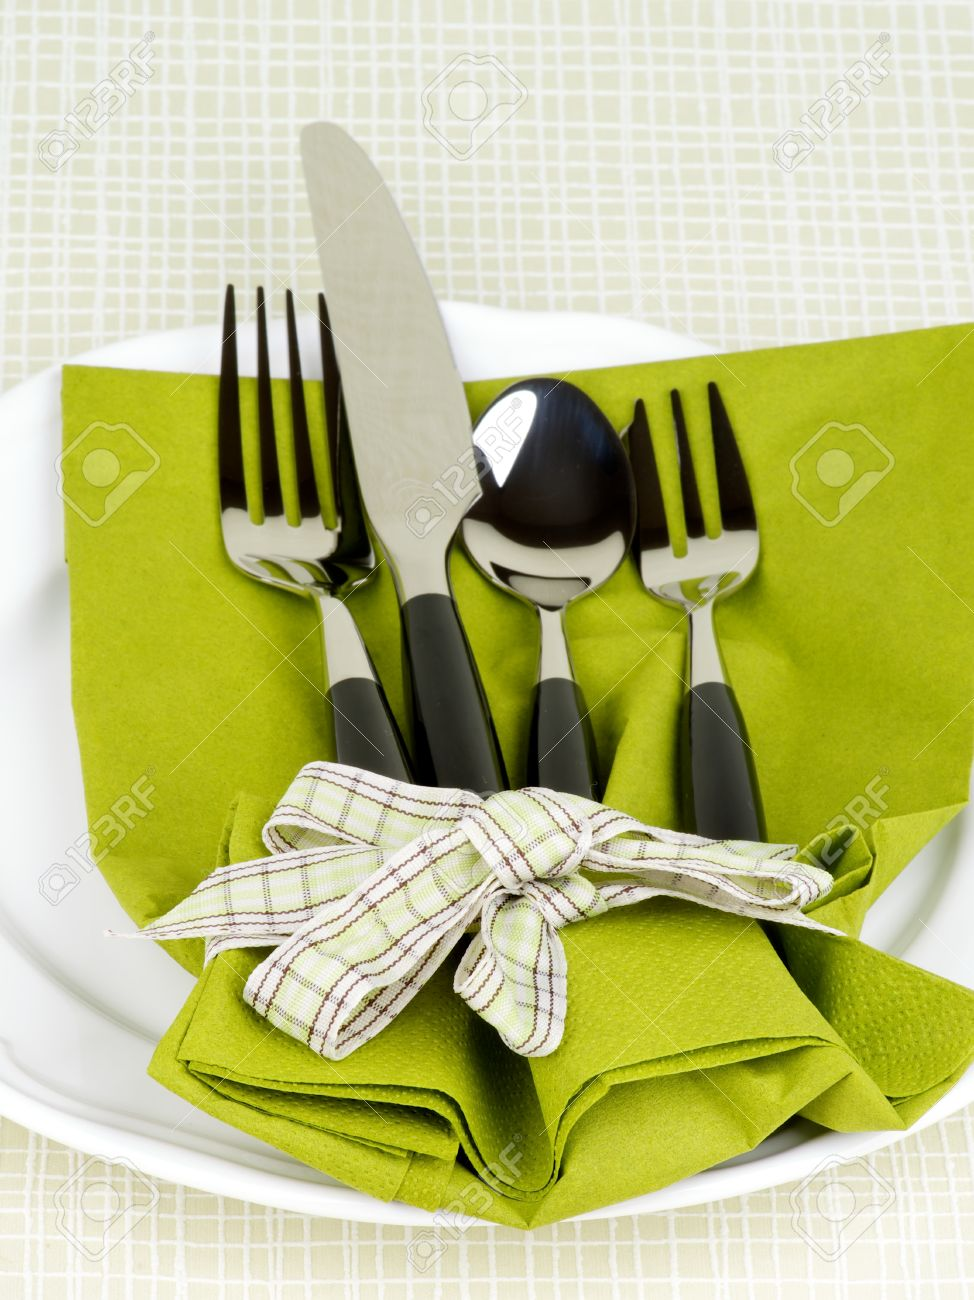 Elegant Table Setting with Fork Table Knife Spoon and Dessert Fork into Green Napkin & Elegant Table Setting With Fork Table Knife Spoon And Dessert ...